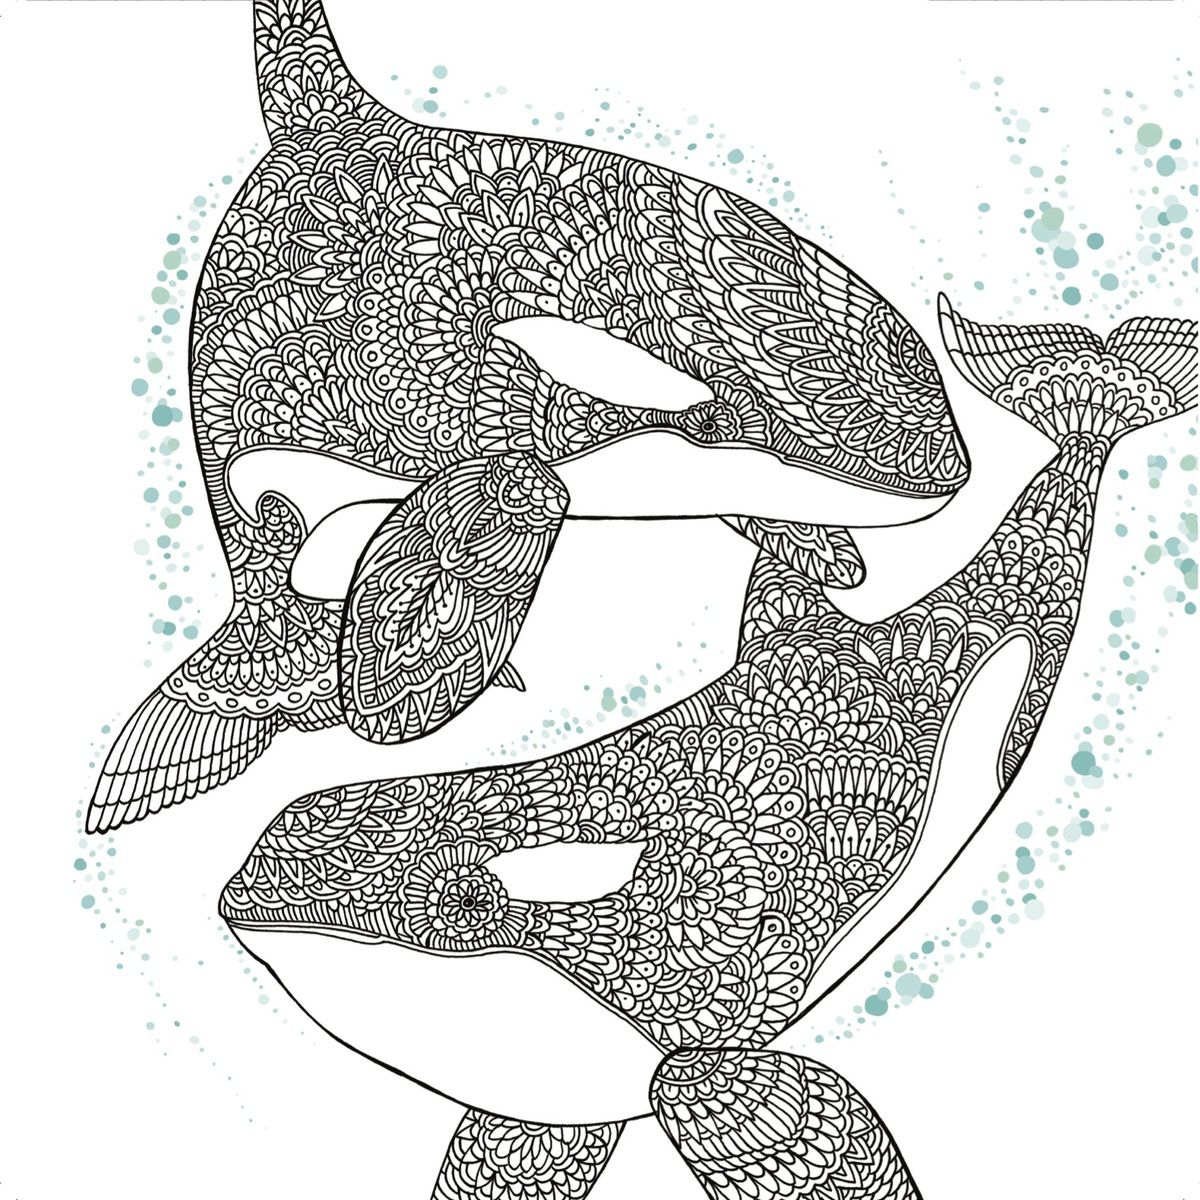 Orca Whale Free Adult Coloring Book Page Whale Coloring Pages